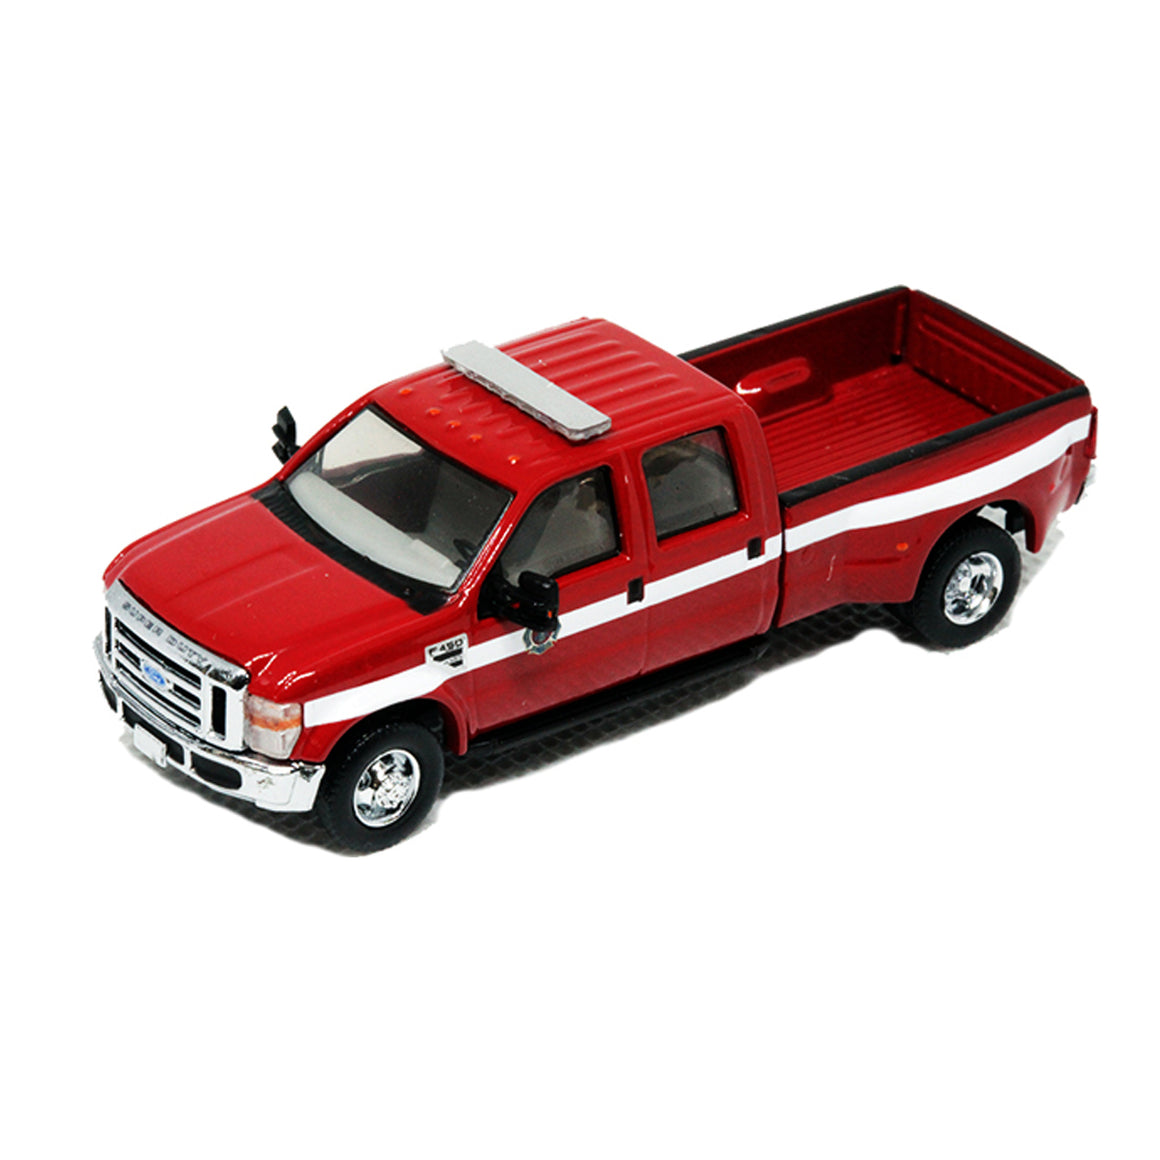 HO Scale: Ford F-450 XLT-Sport Crew Cab - Fire Department - Red w/ White Stripe